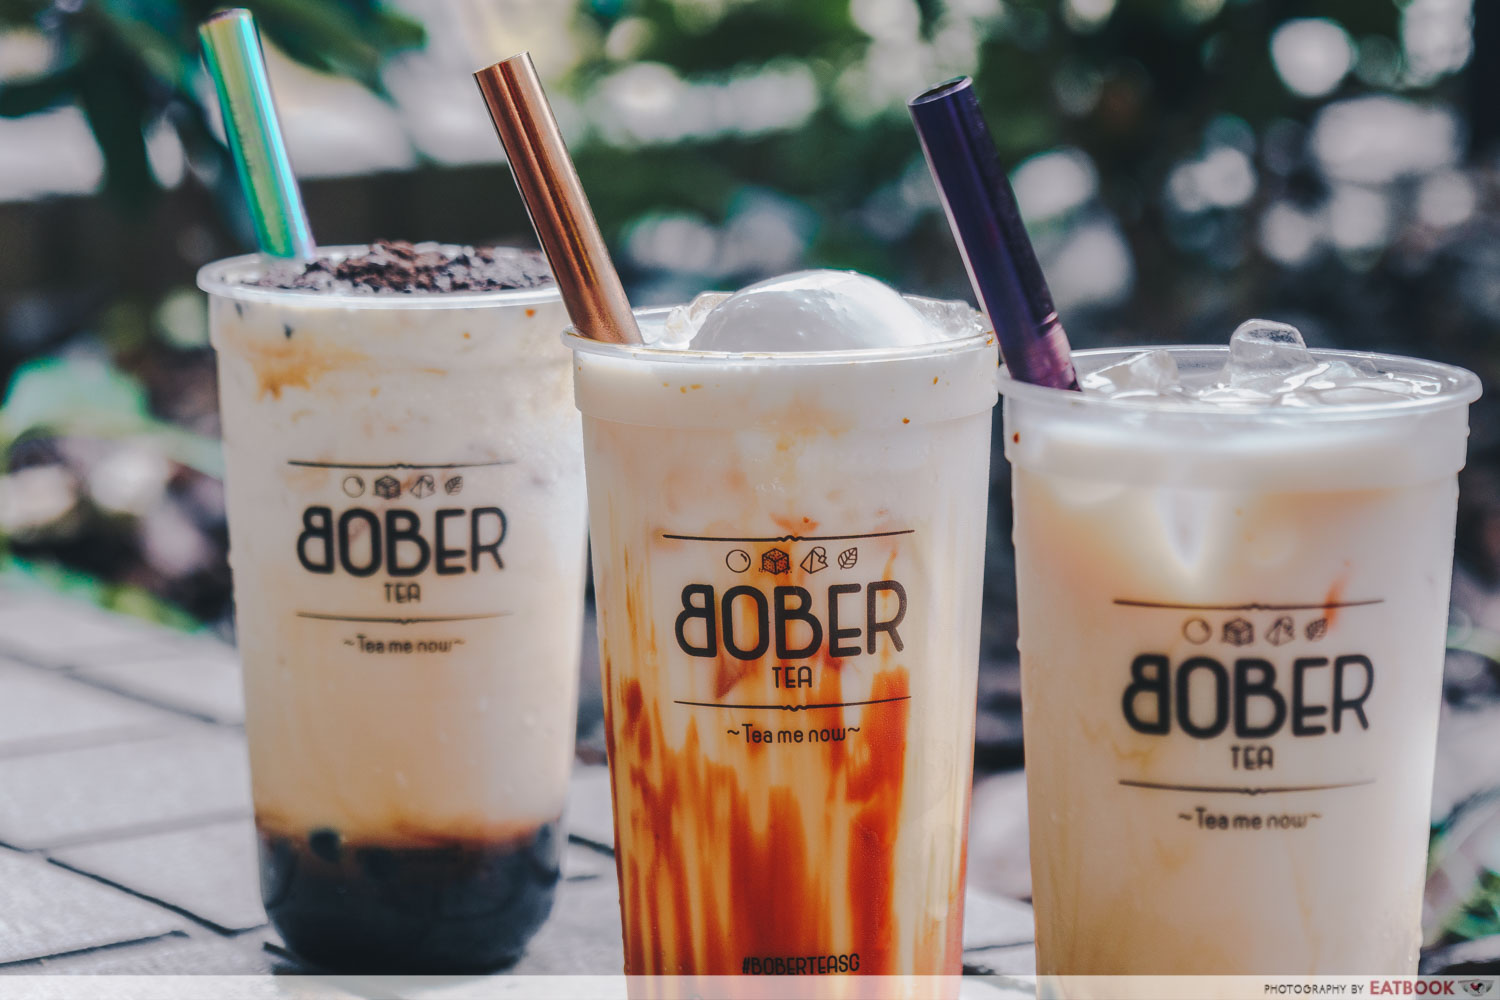 Bober Tea - Brown Sugar Bubble Tea